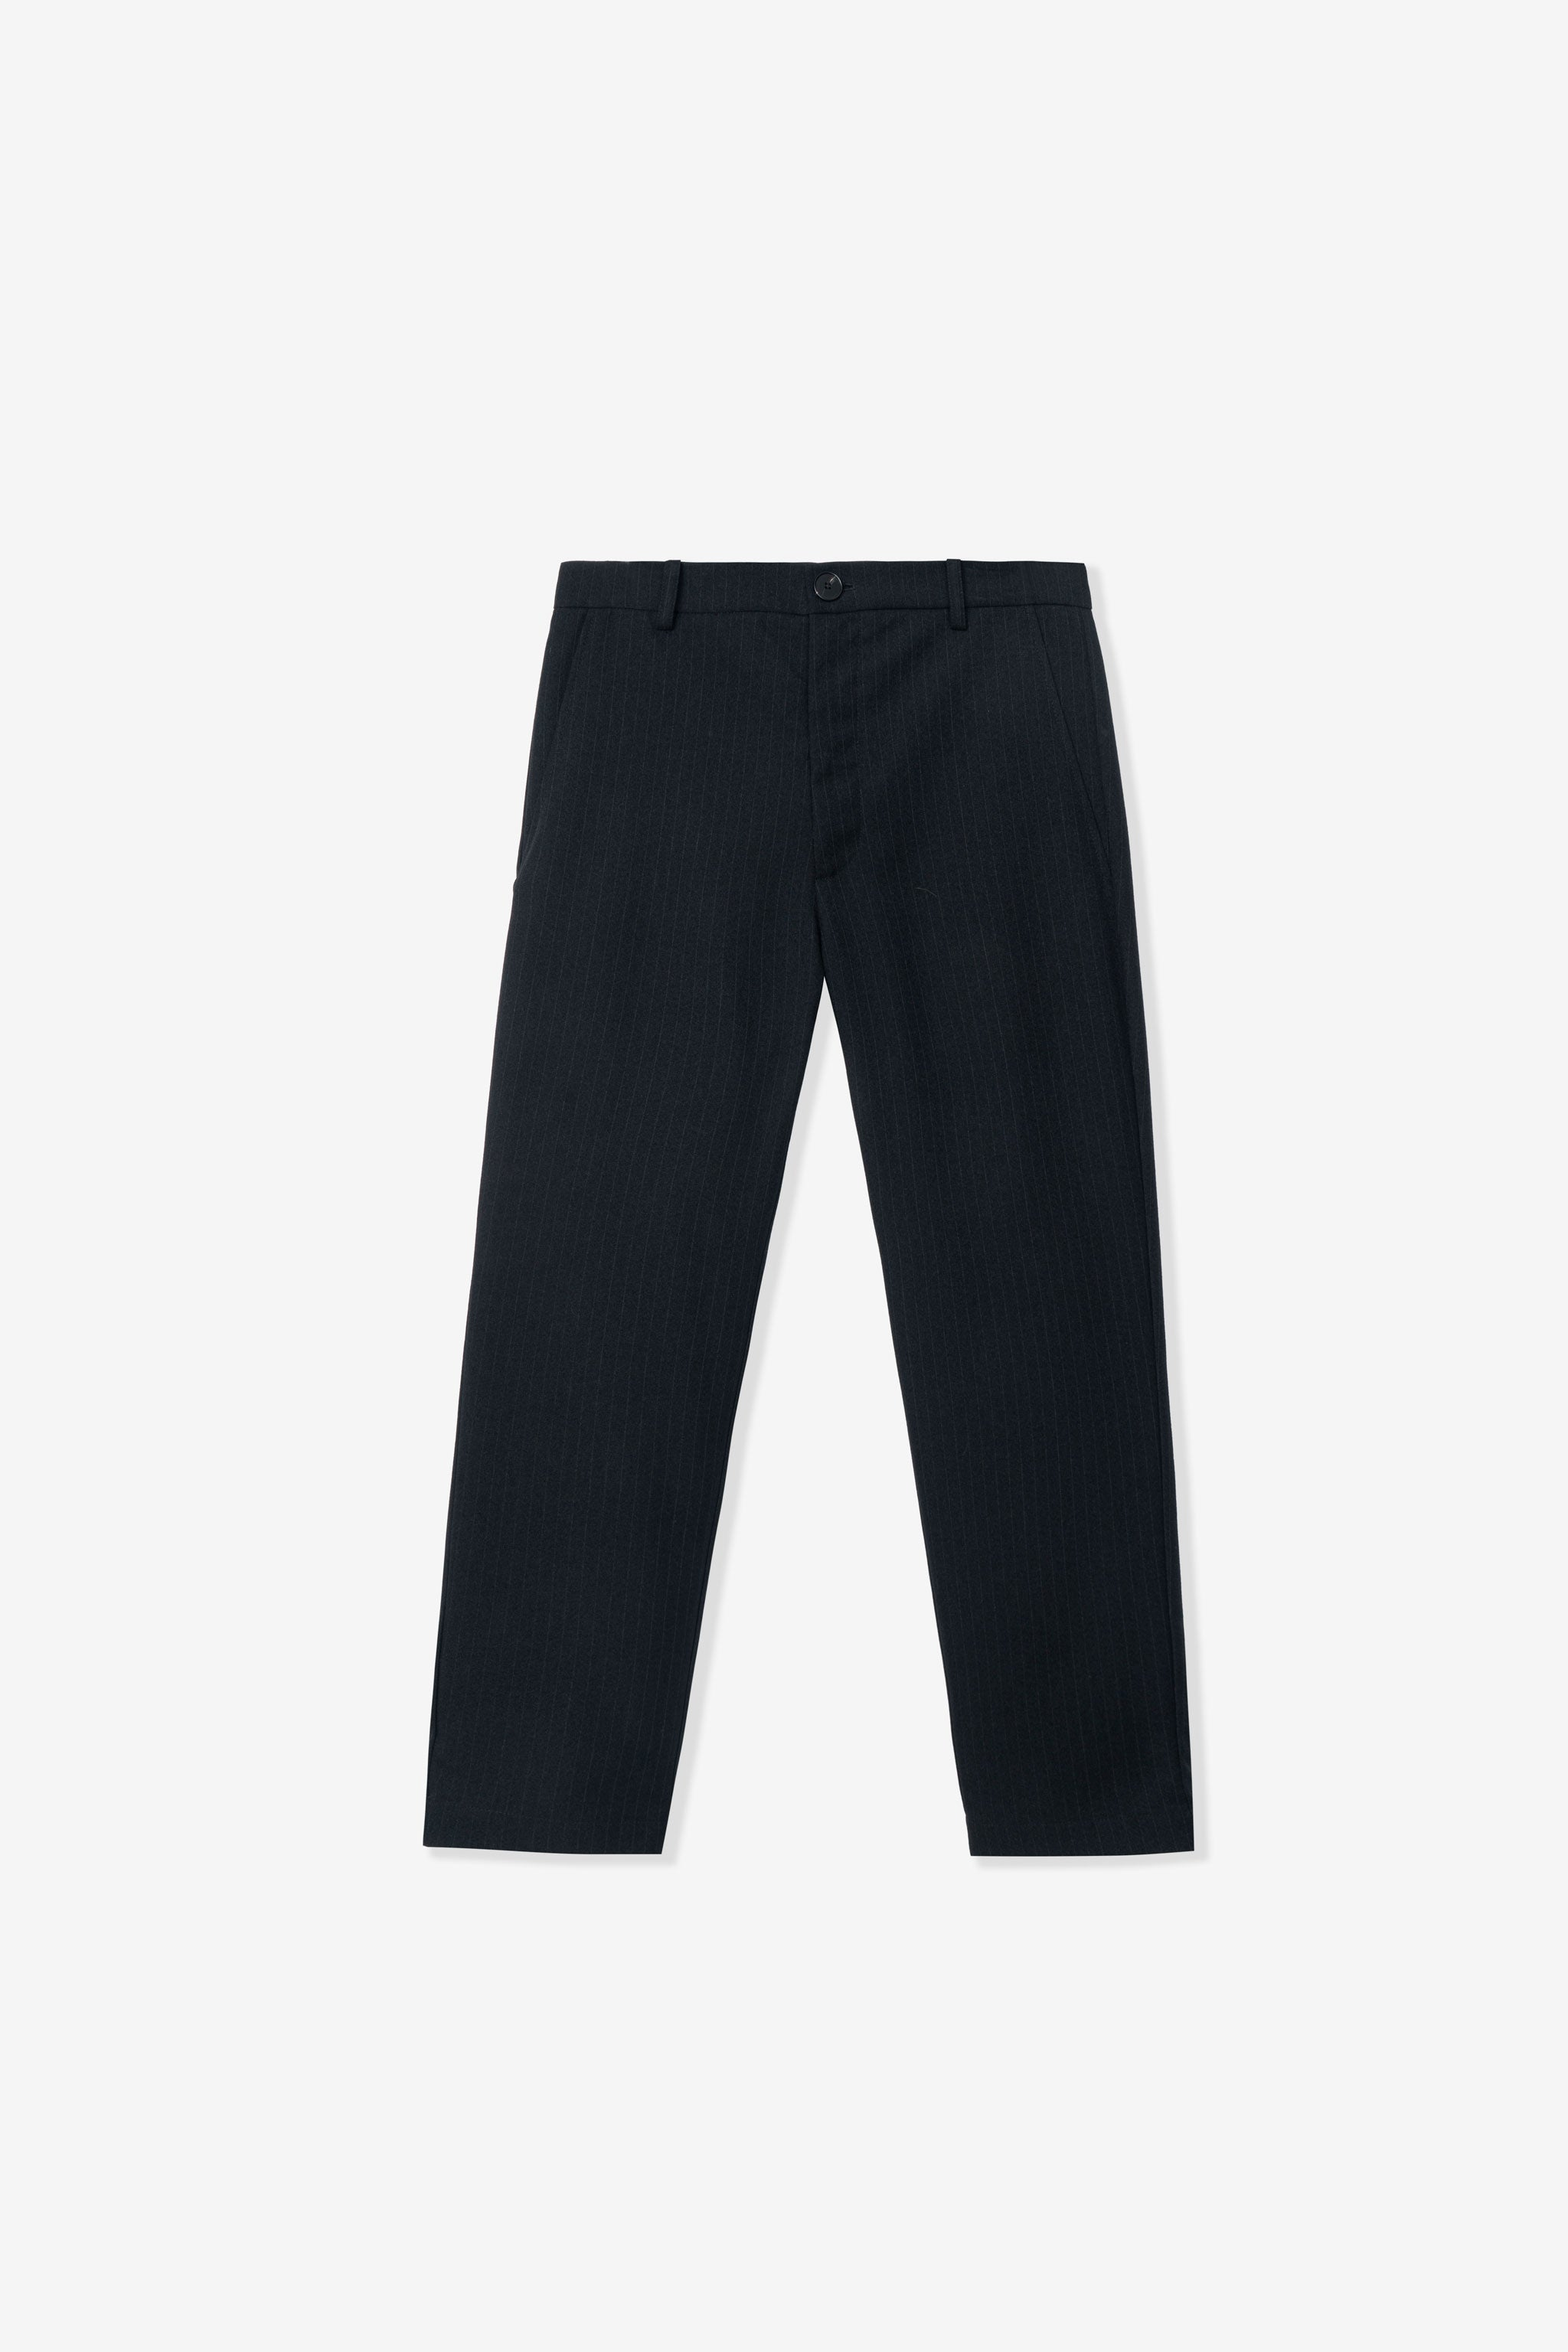 Goodfight Junction Trouser Black Pinstripe